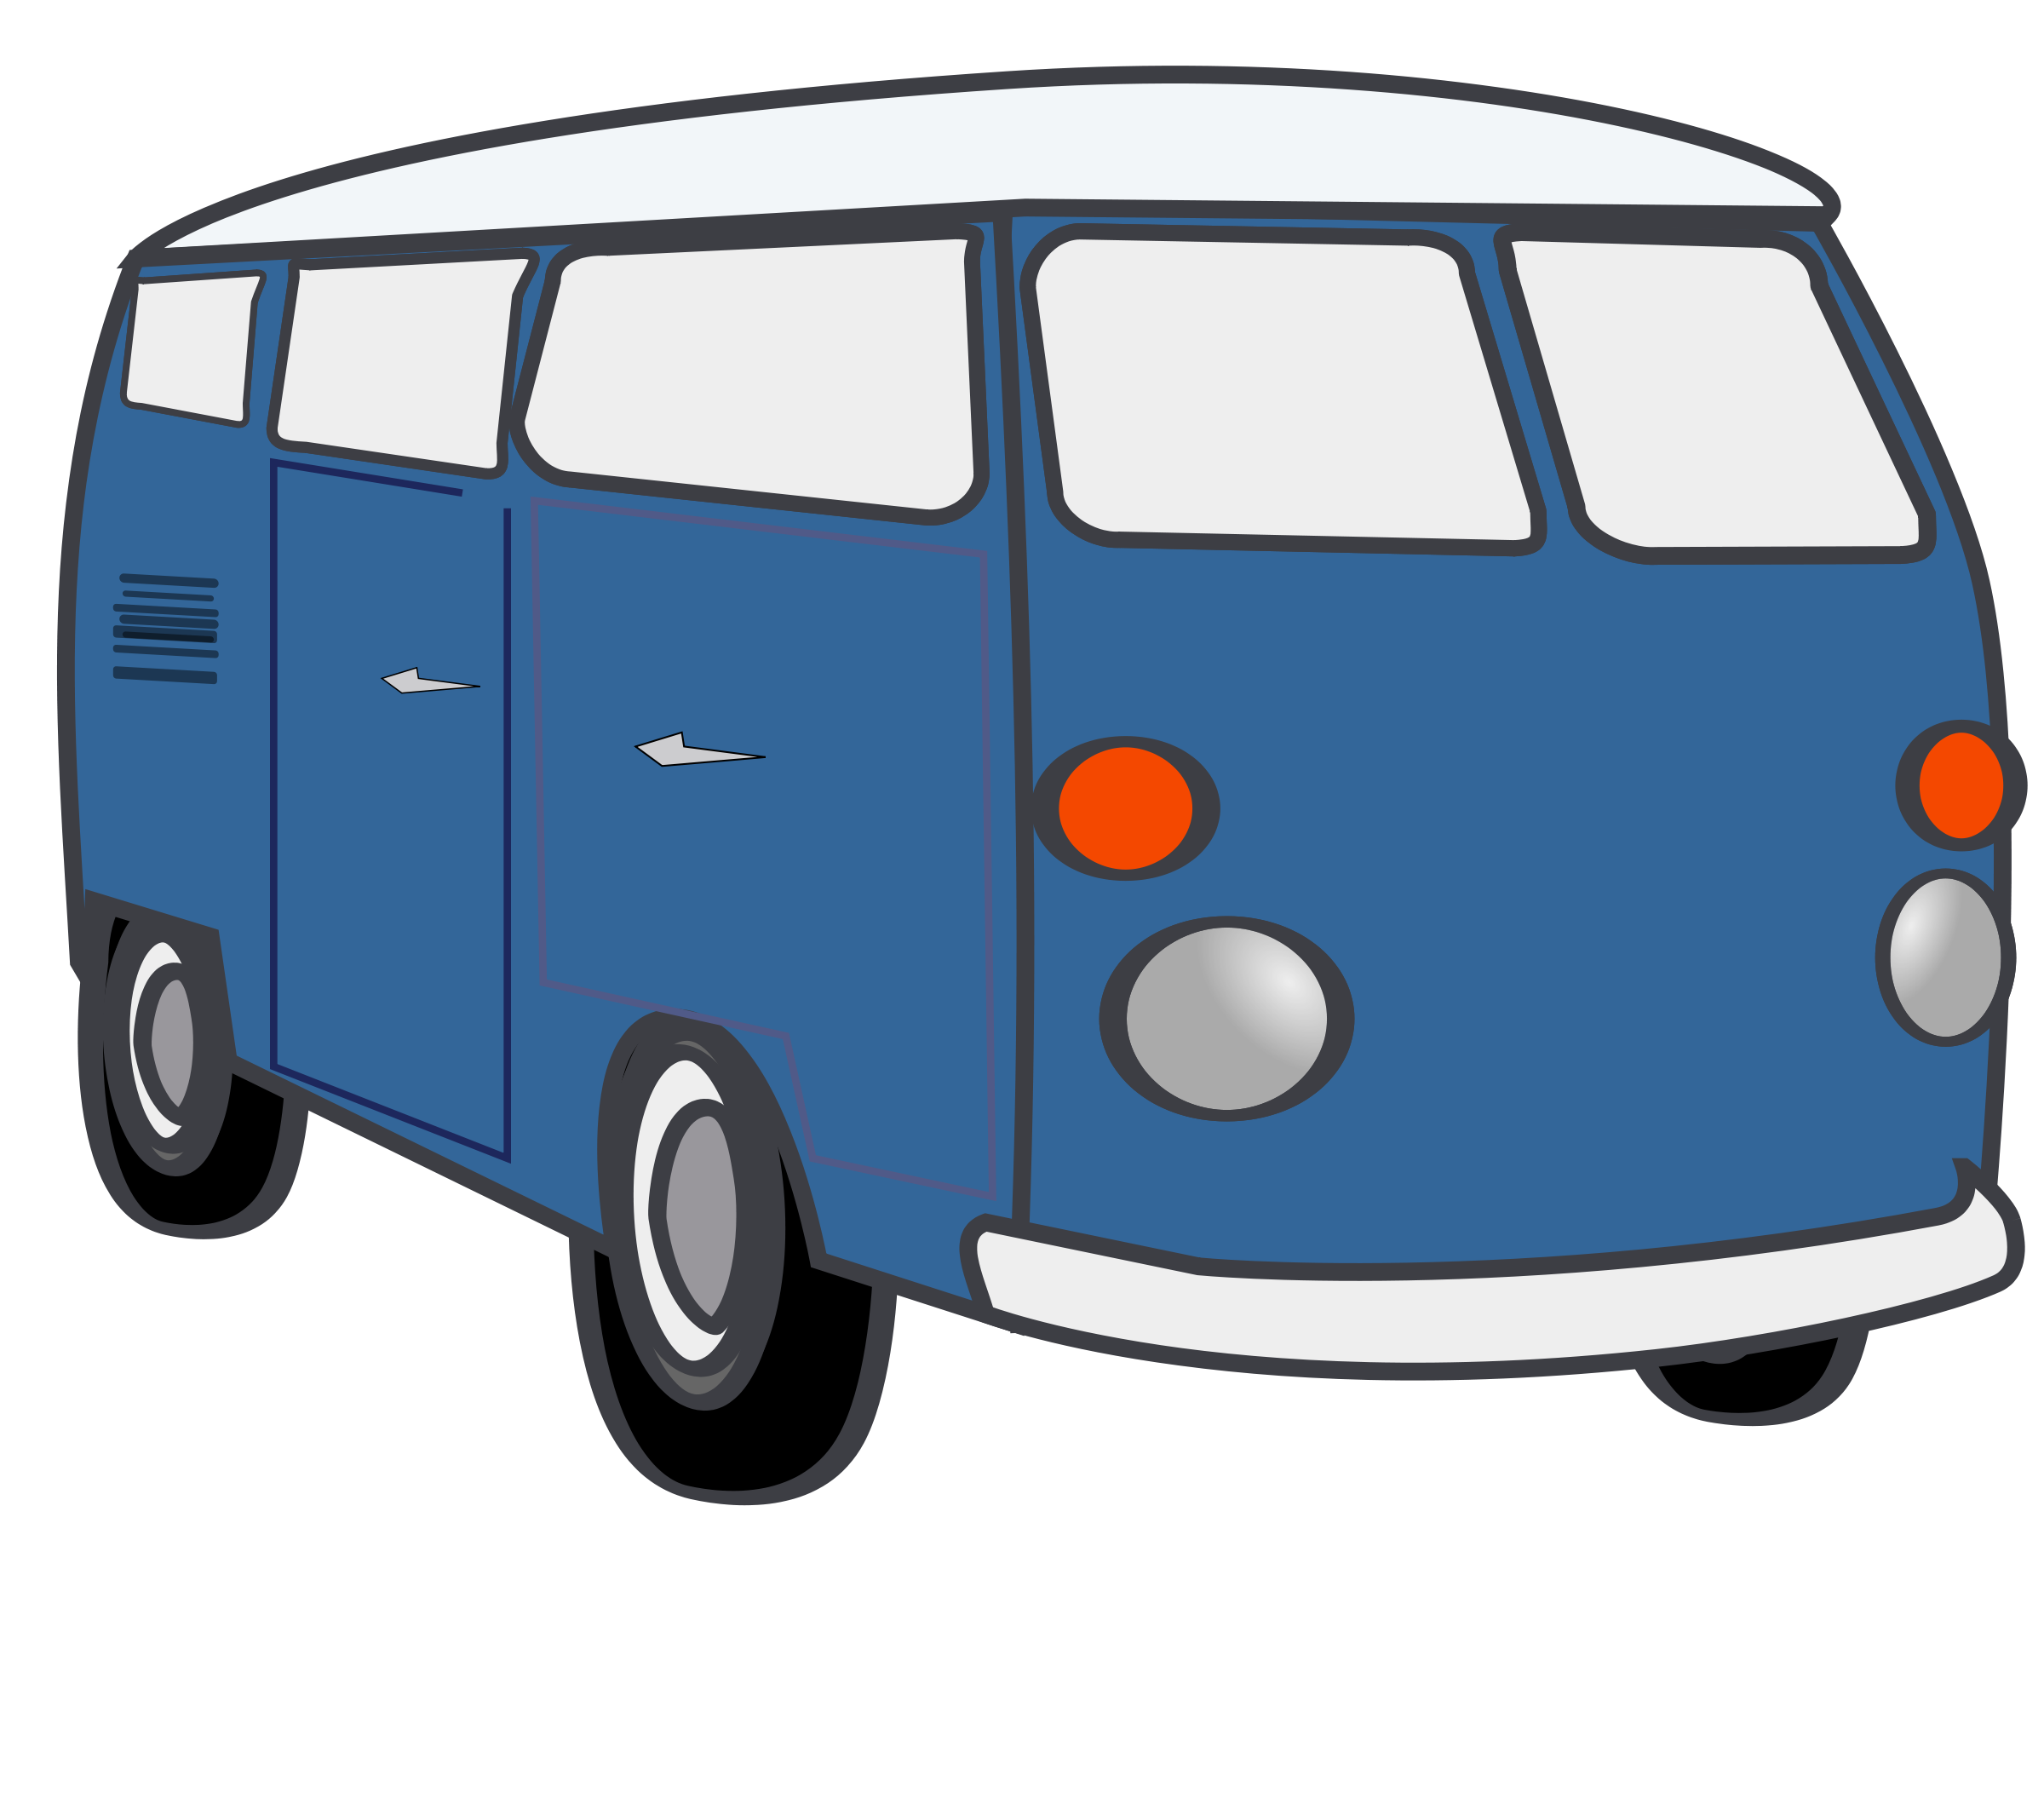 Clipart bus library. Vw many interesting cliparts